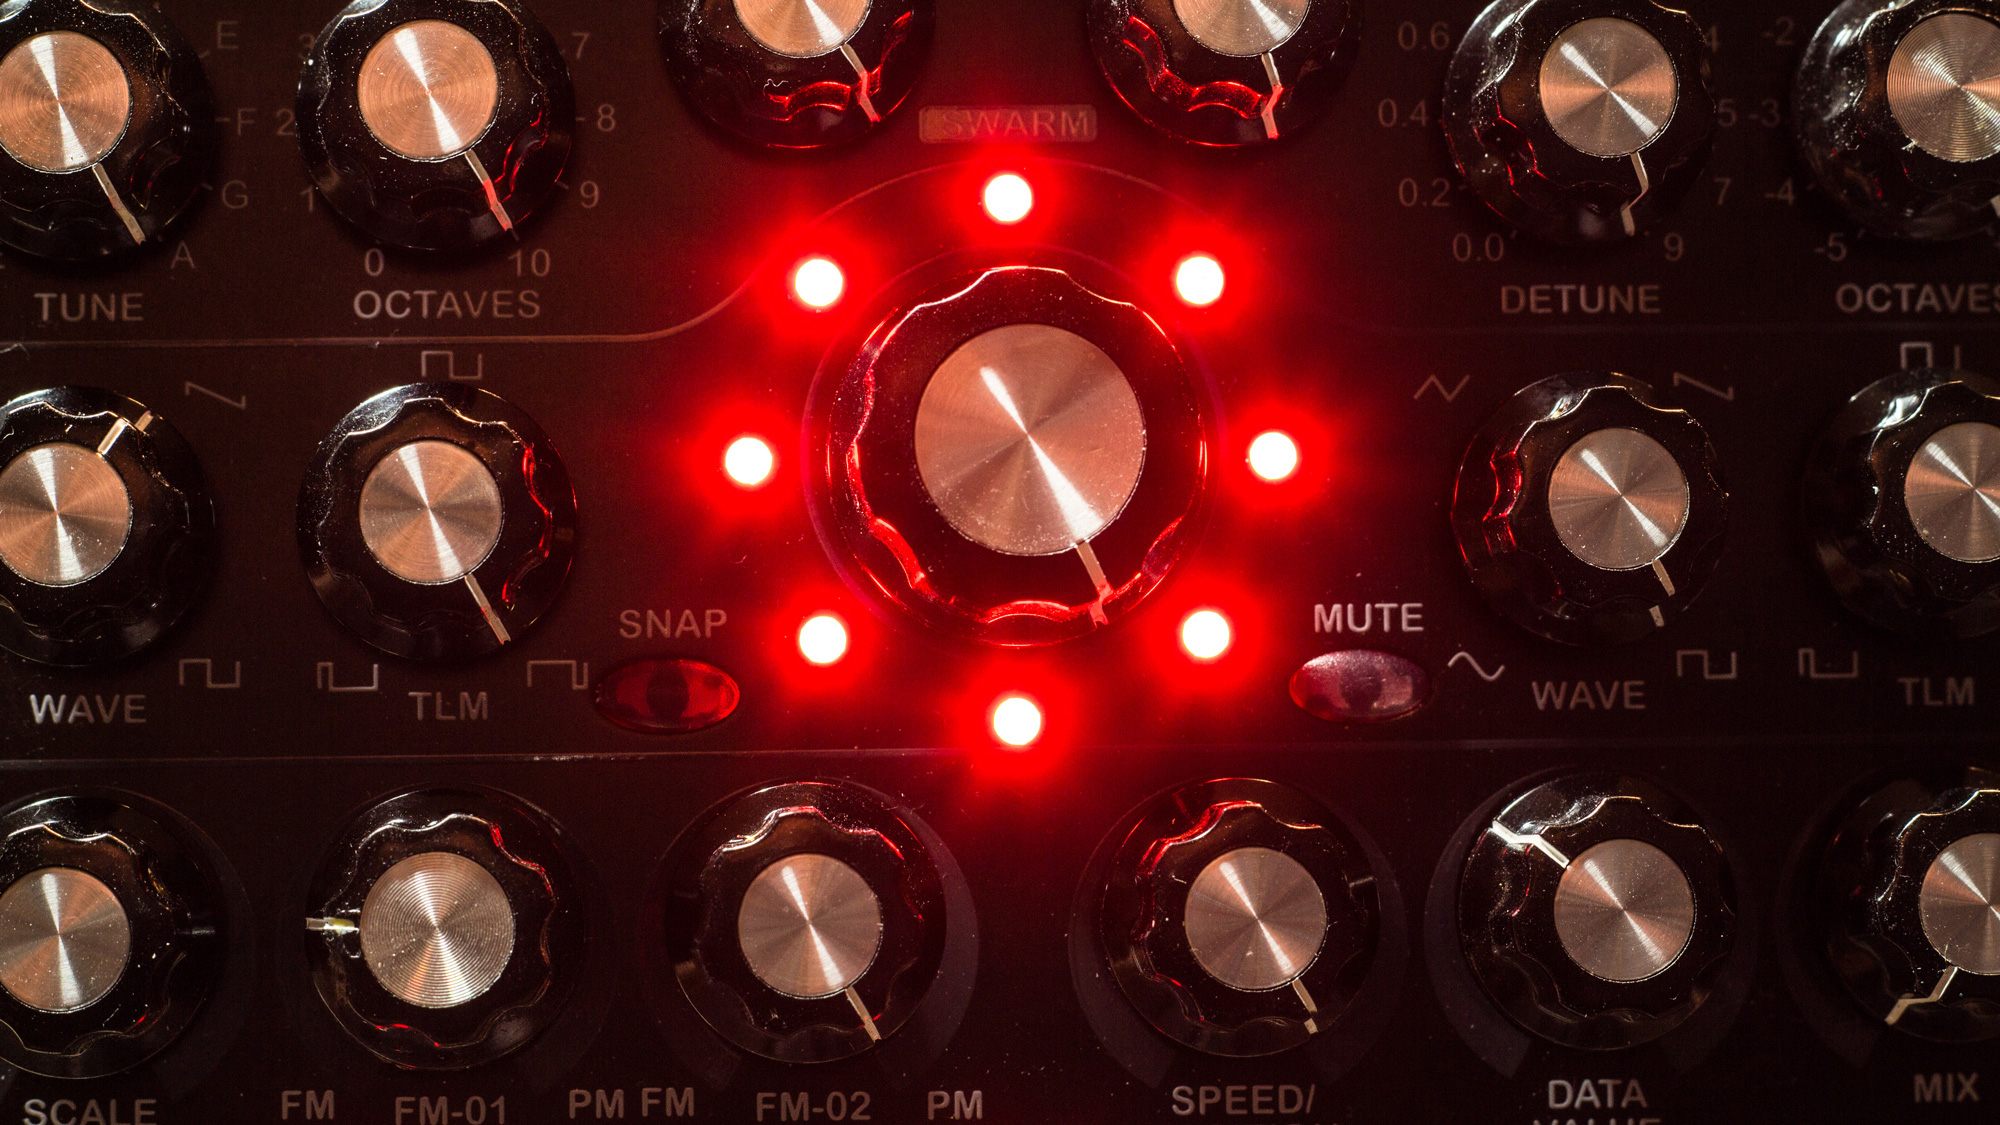 Radikal Technologies RT-311 Swarm Oscillator with red lights